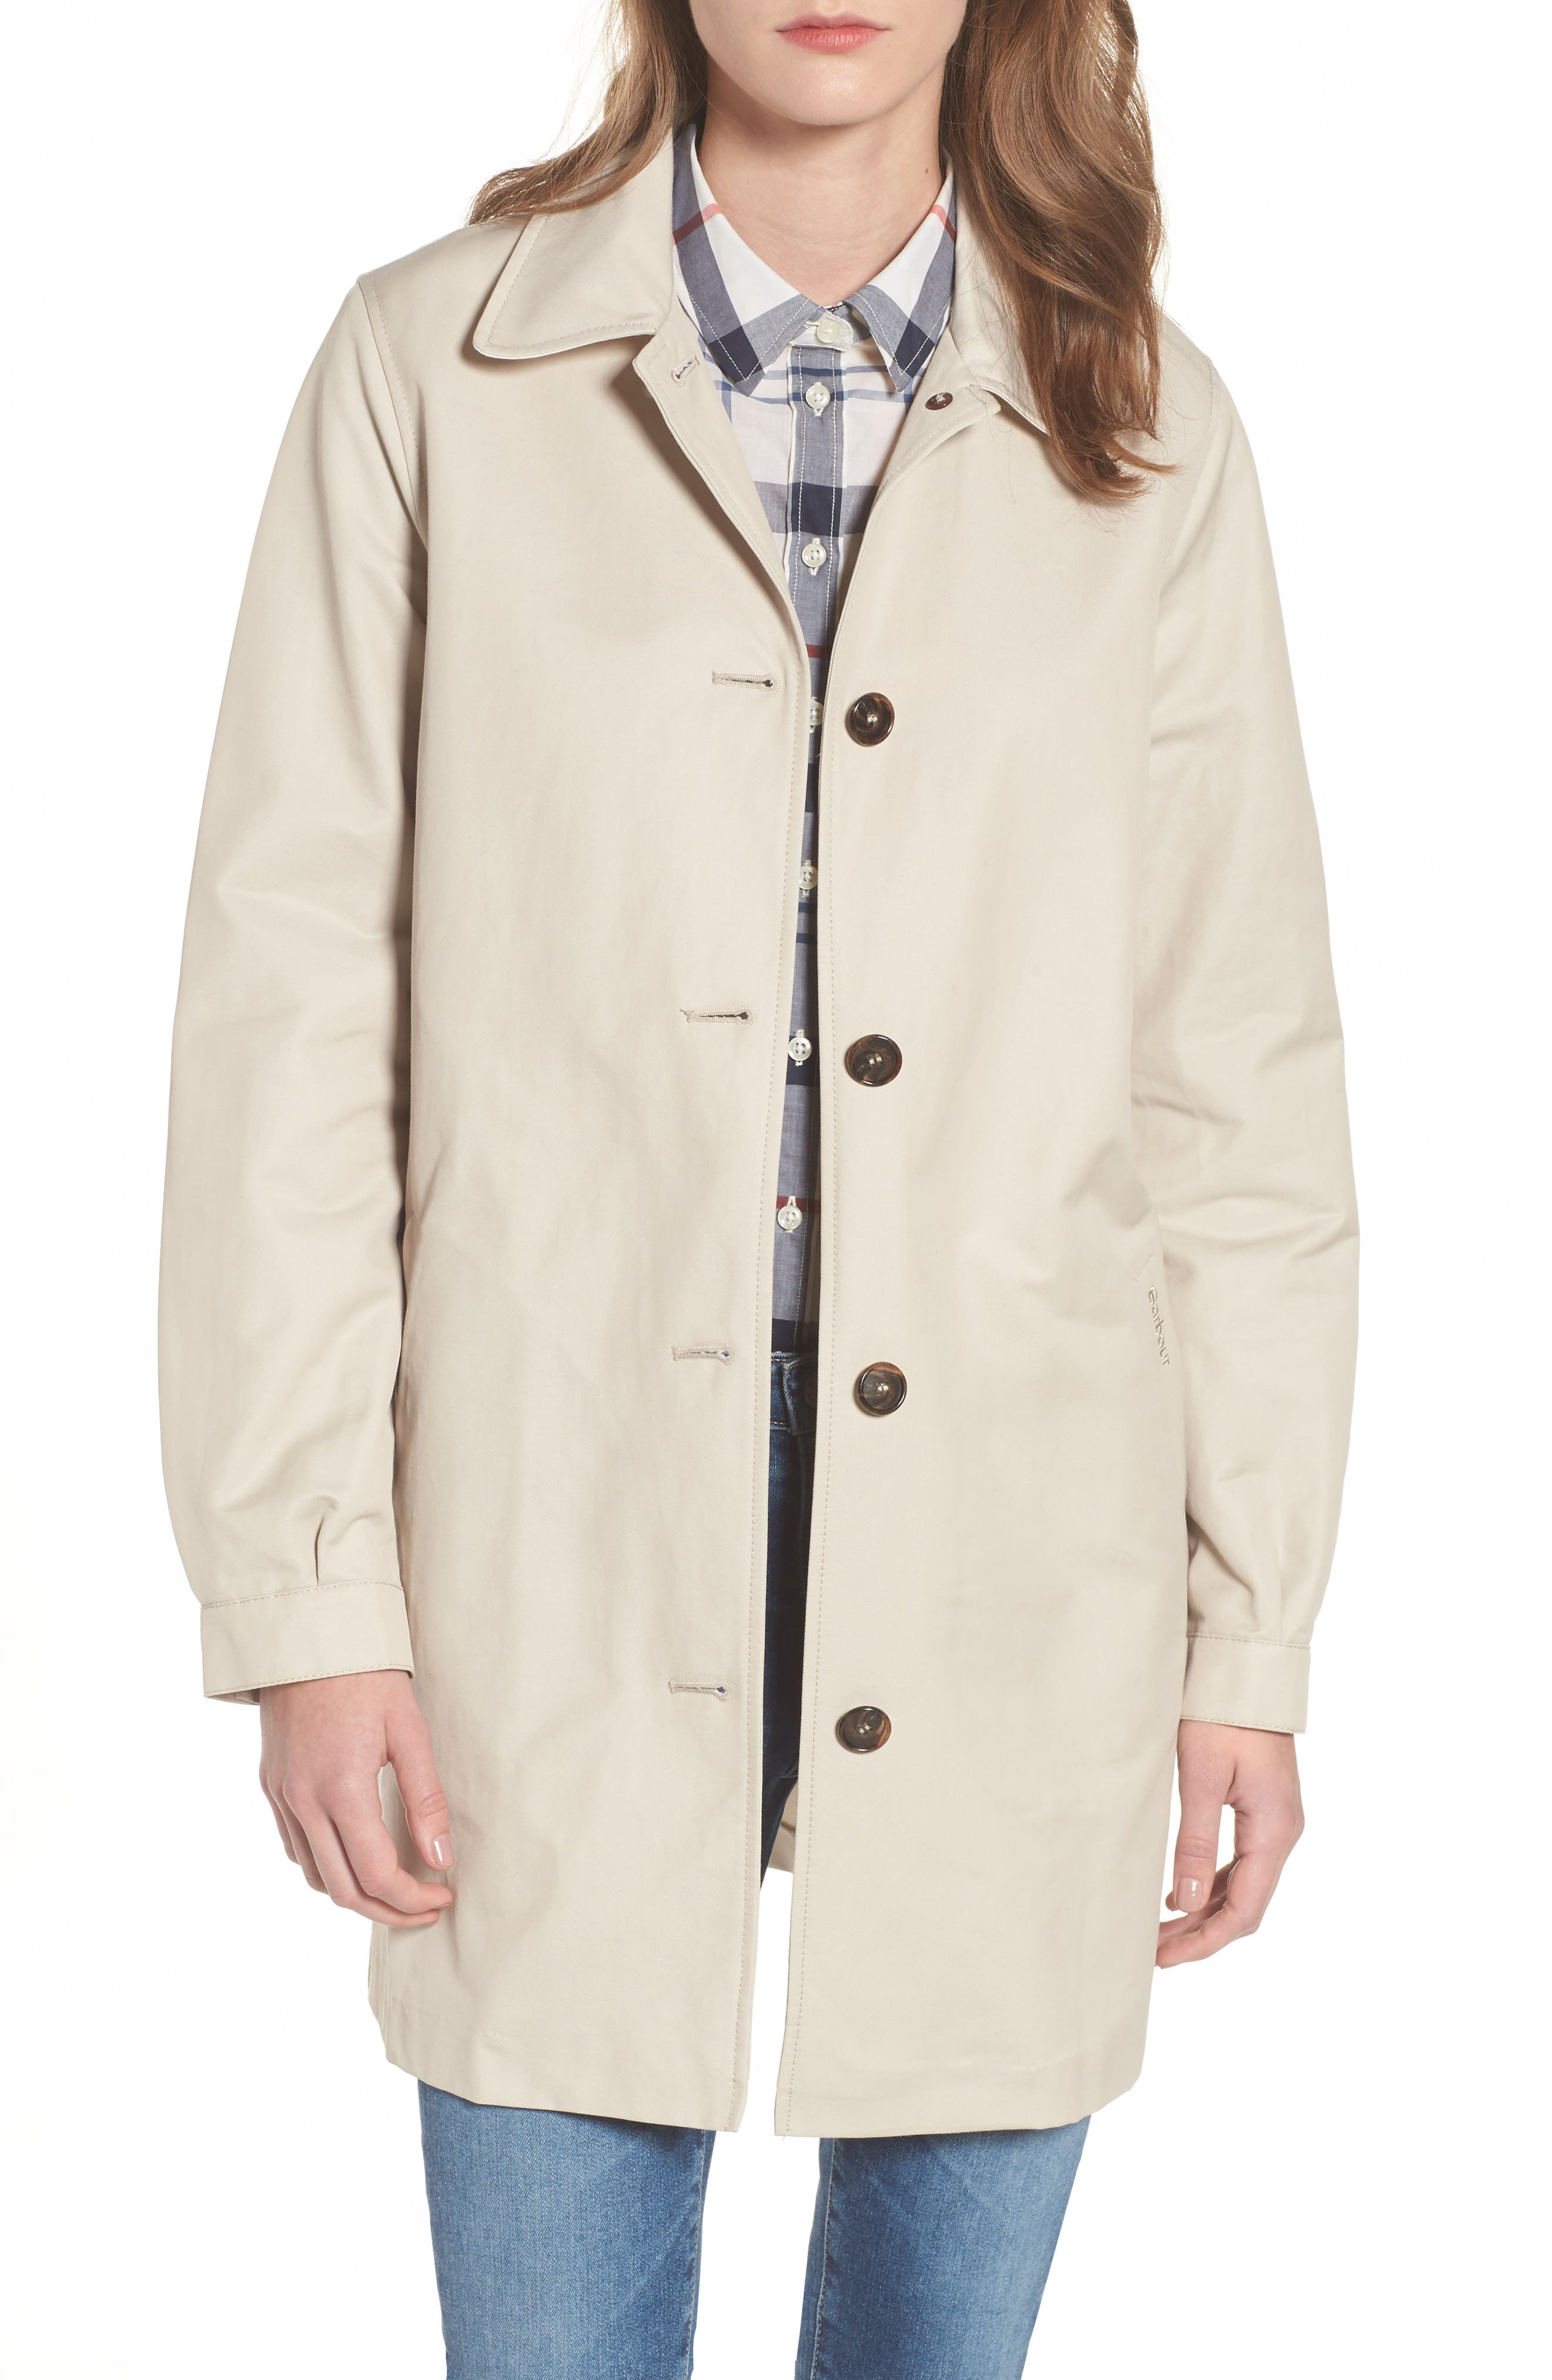 Yewdale Jacket,                         Main,                         color, Mist